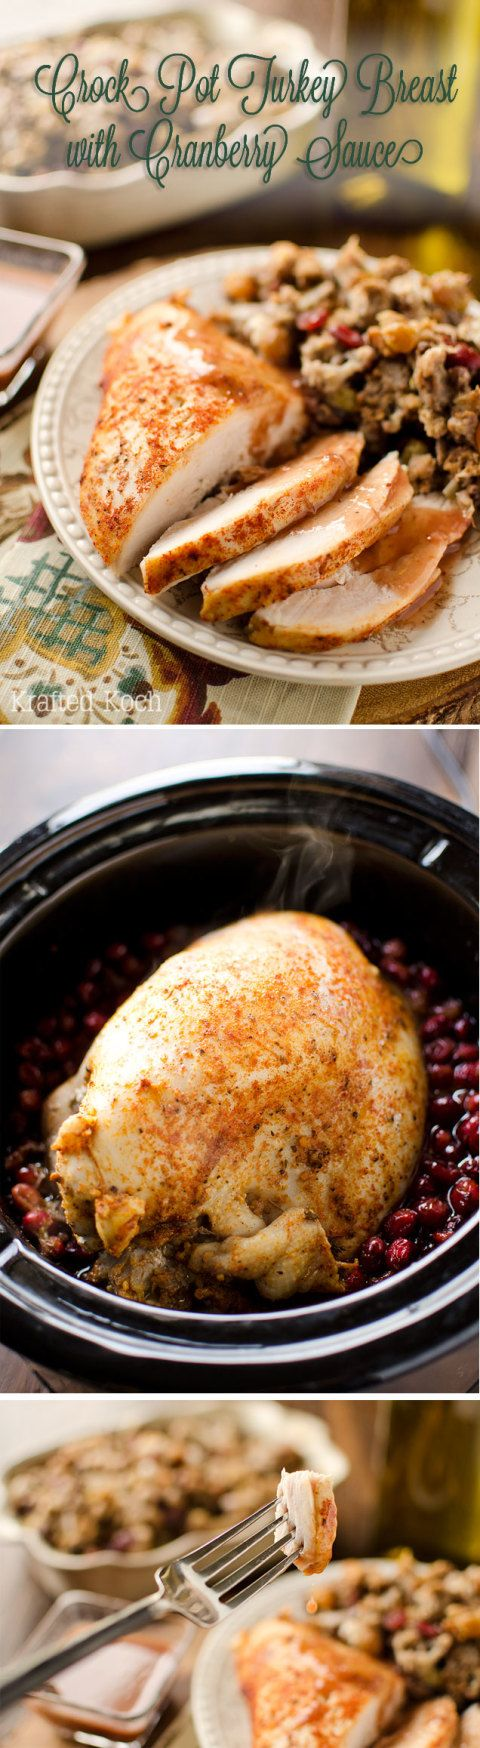 Crock Pot Turkey Breast with Cranberry Sauce - Krafted Koch -  The BEST turkey recipe you will every try! Turkey breast that is brined and slow cooked for a wonderfully flavorful and crazy juicy piece of meat along with a cranberry sauce that makes itself in the slow cooker. You will never look at turkey the same way again!